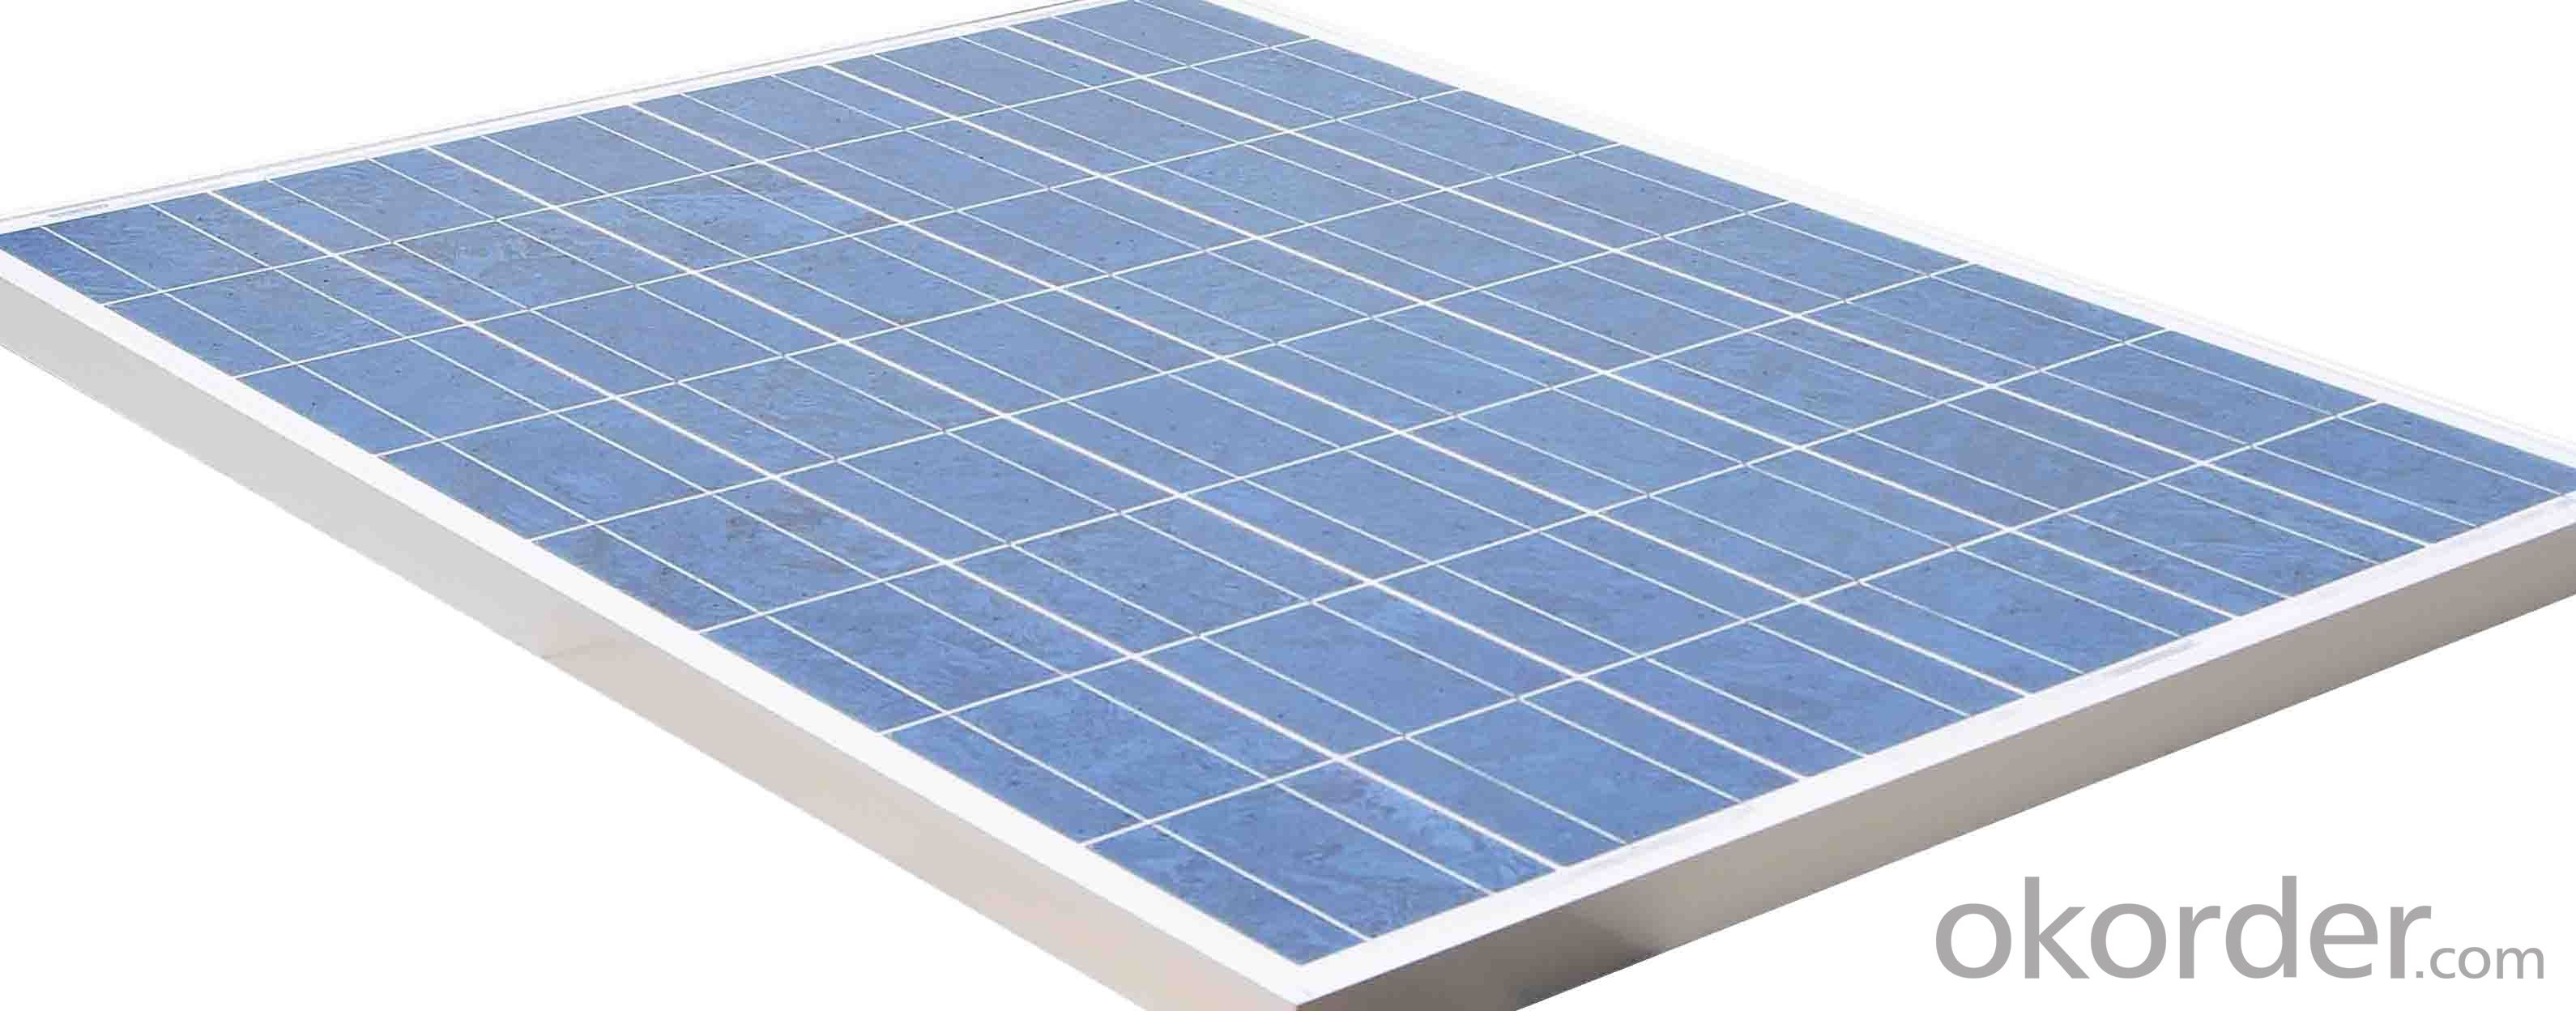 Mono Solar Cell/PV Module with Good Price Favorites Compare 180w